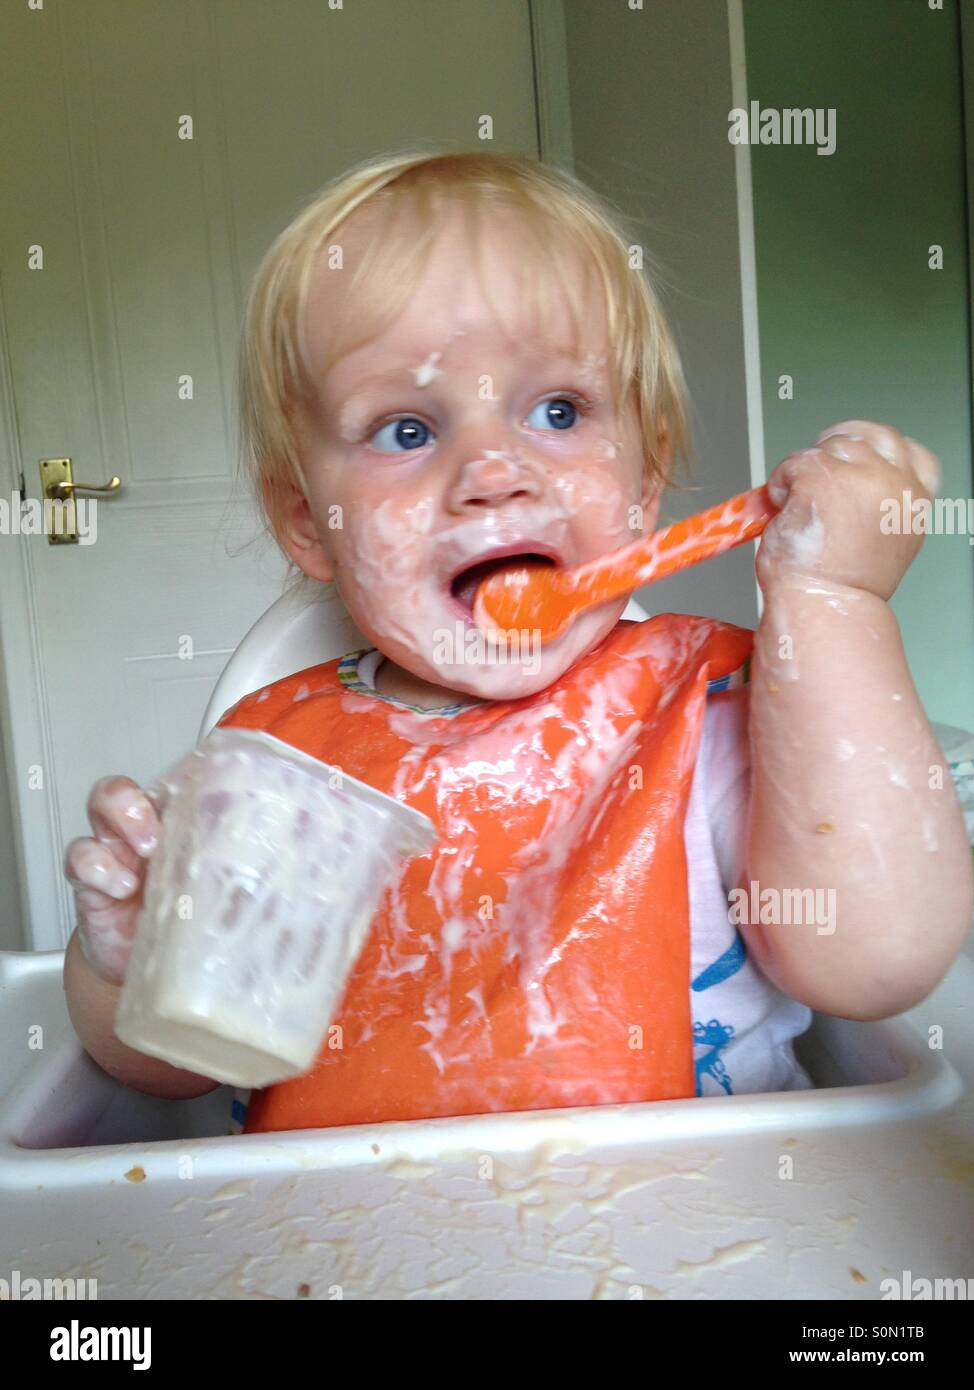 Baby making a mess eating a yoghurt - Stock Image